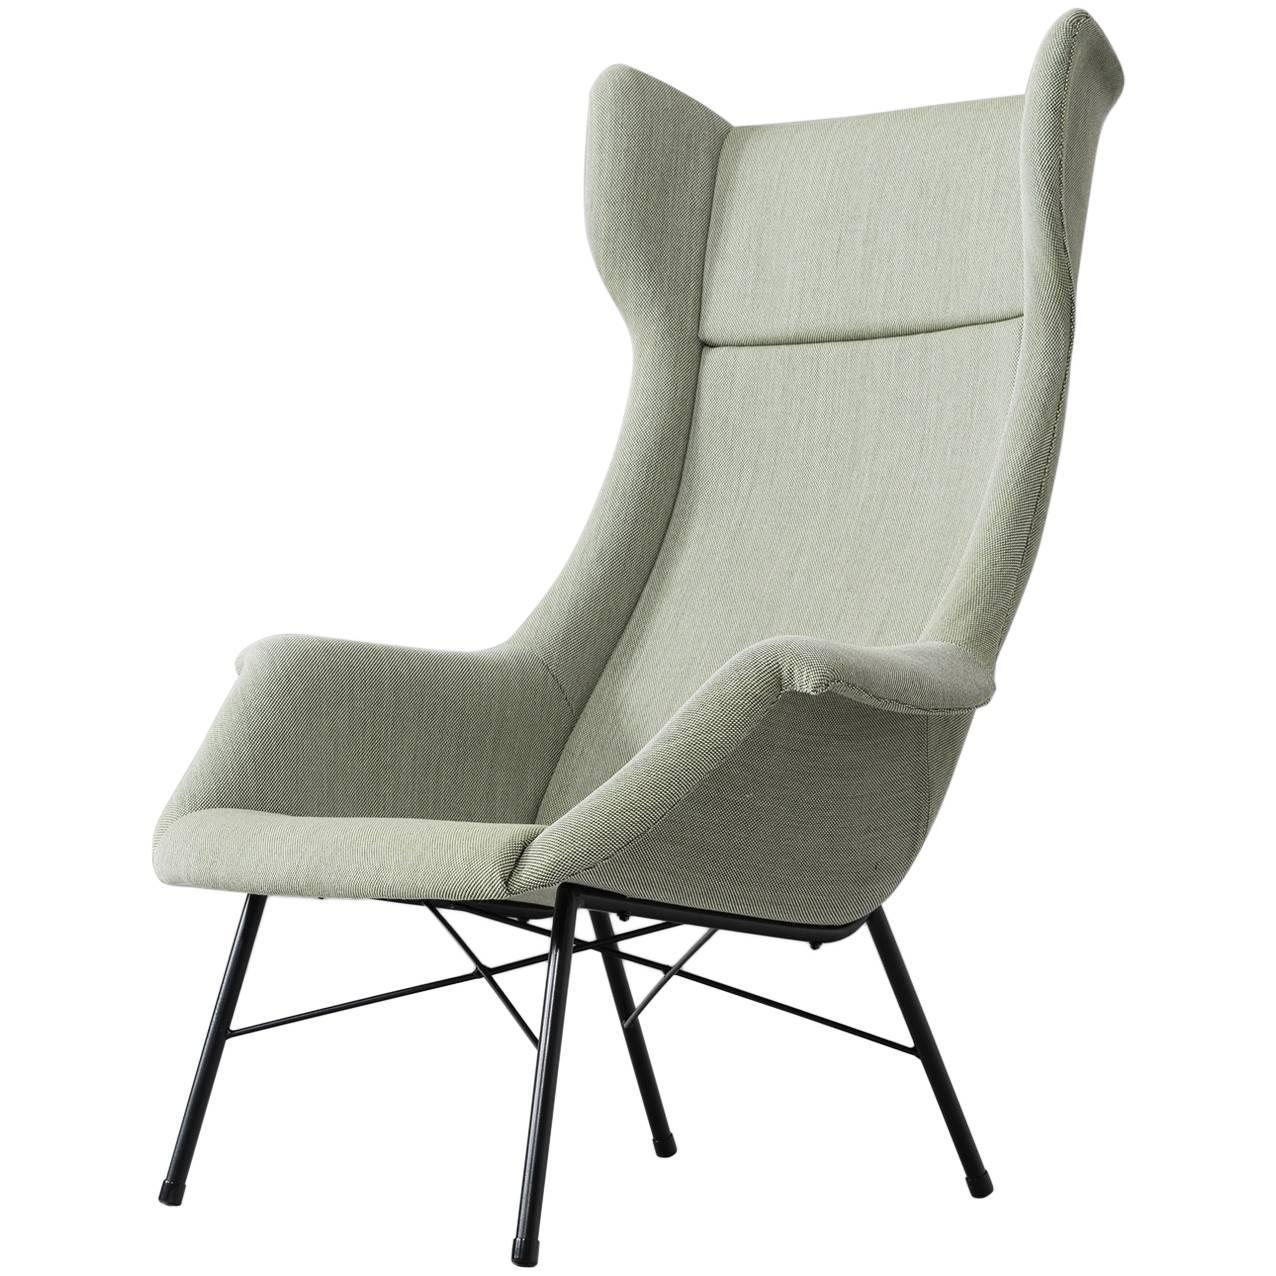 Mid century reupholstered high back lounge chair for sale for Reupholstered chairs for sale